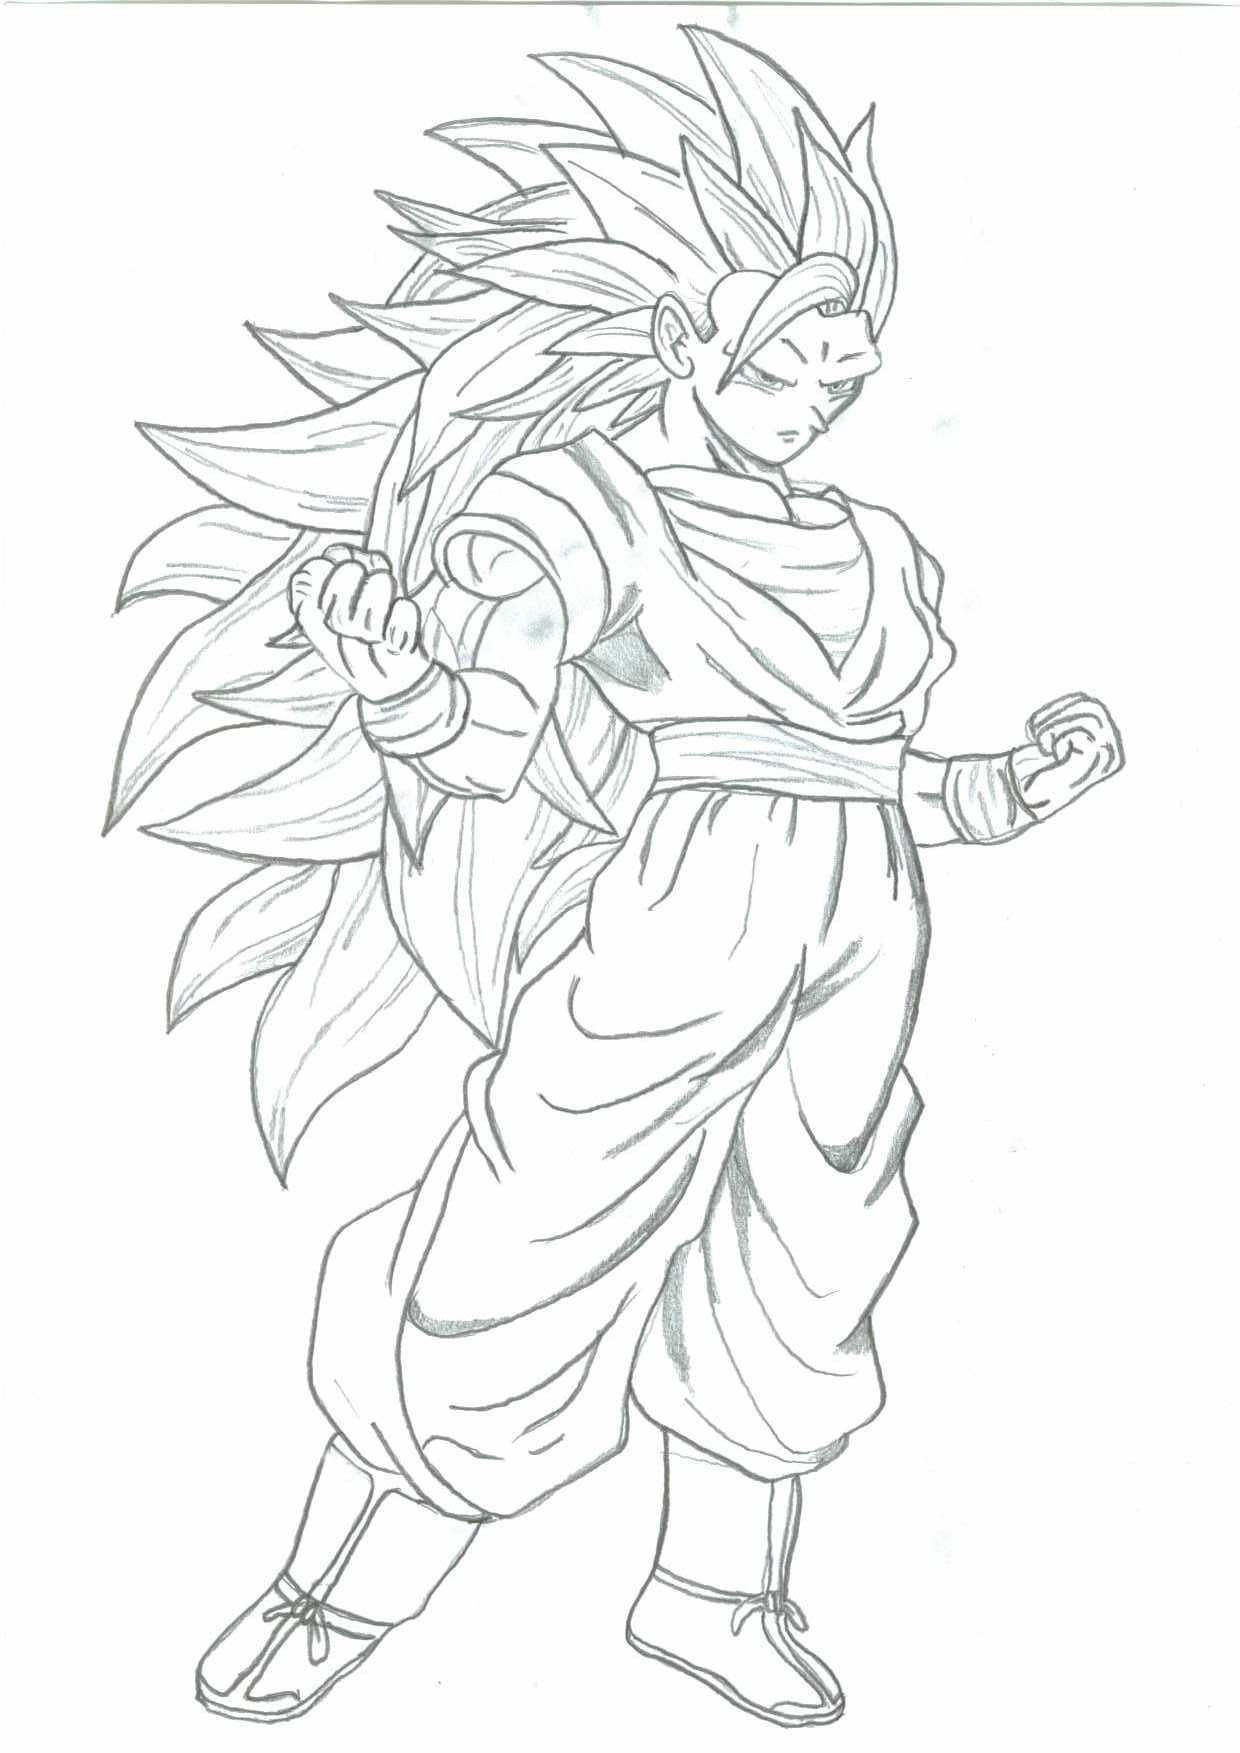 super san goku coloring pages - photo#10